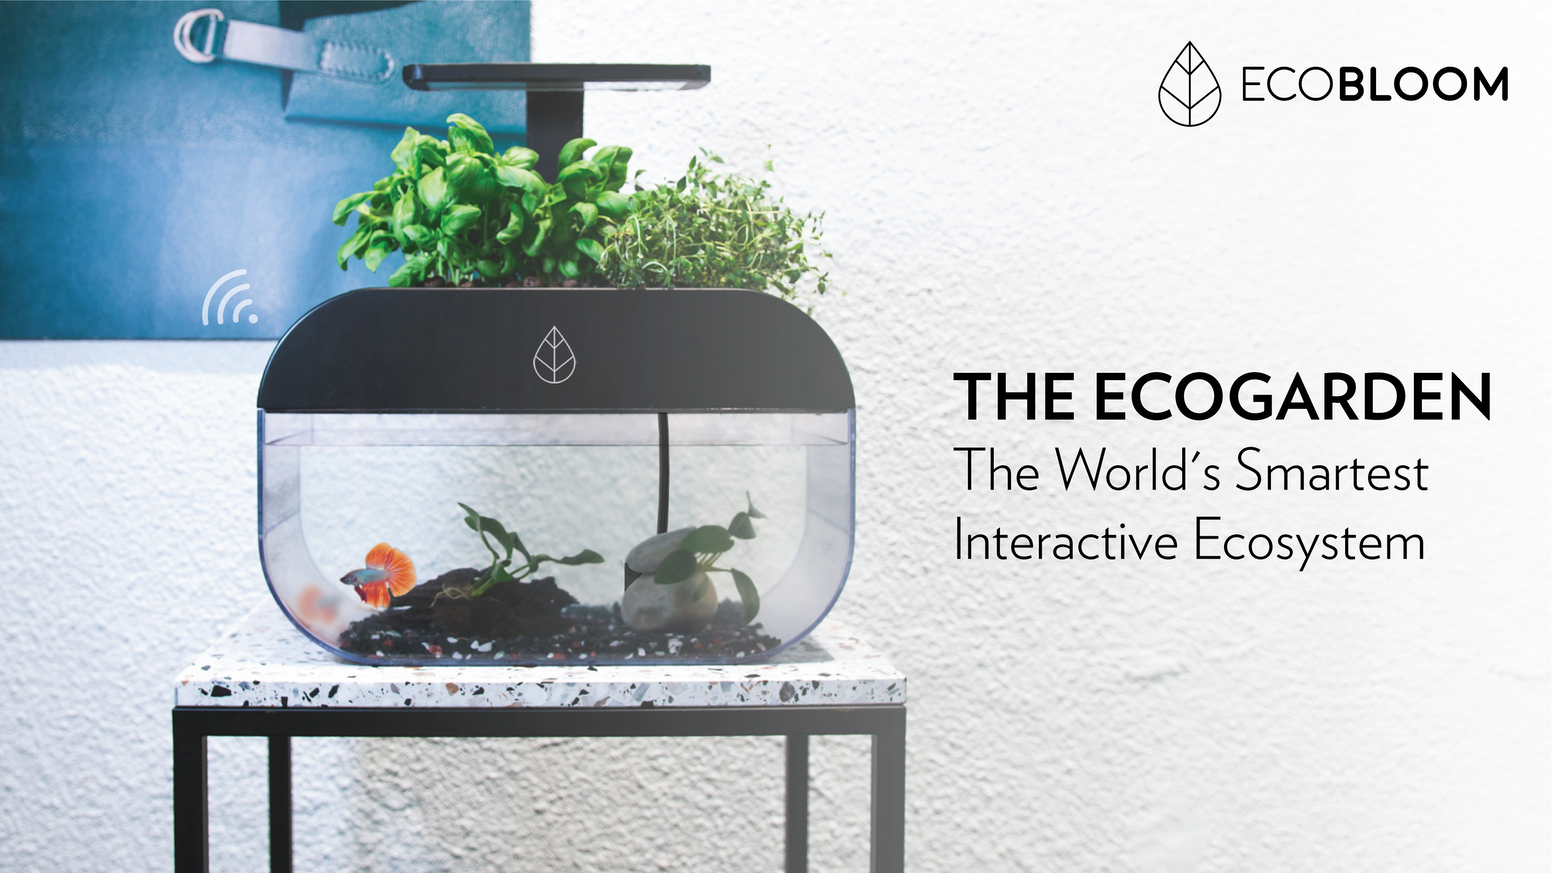 A smart miniature greenhouse and self-sustaining aquarium.